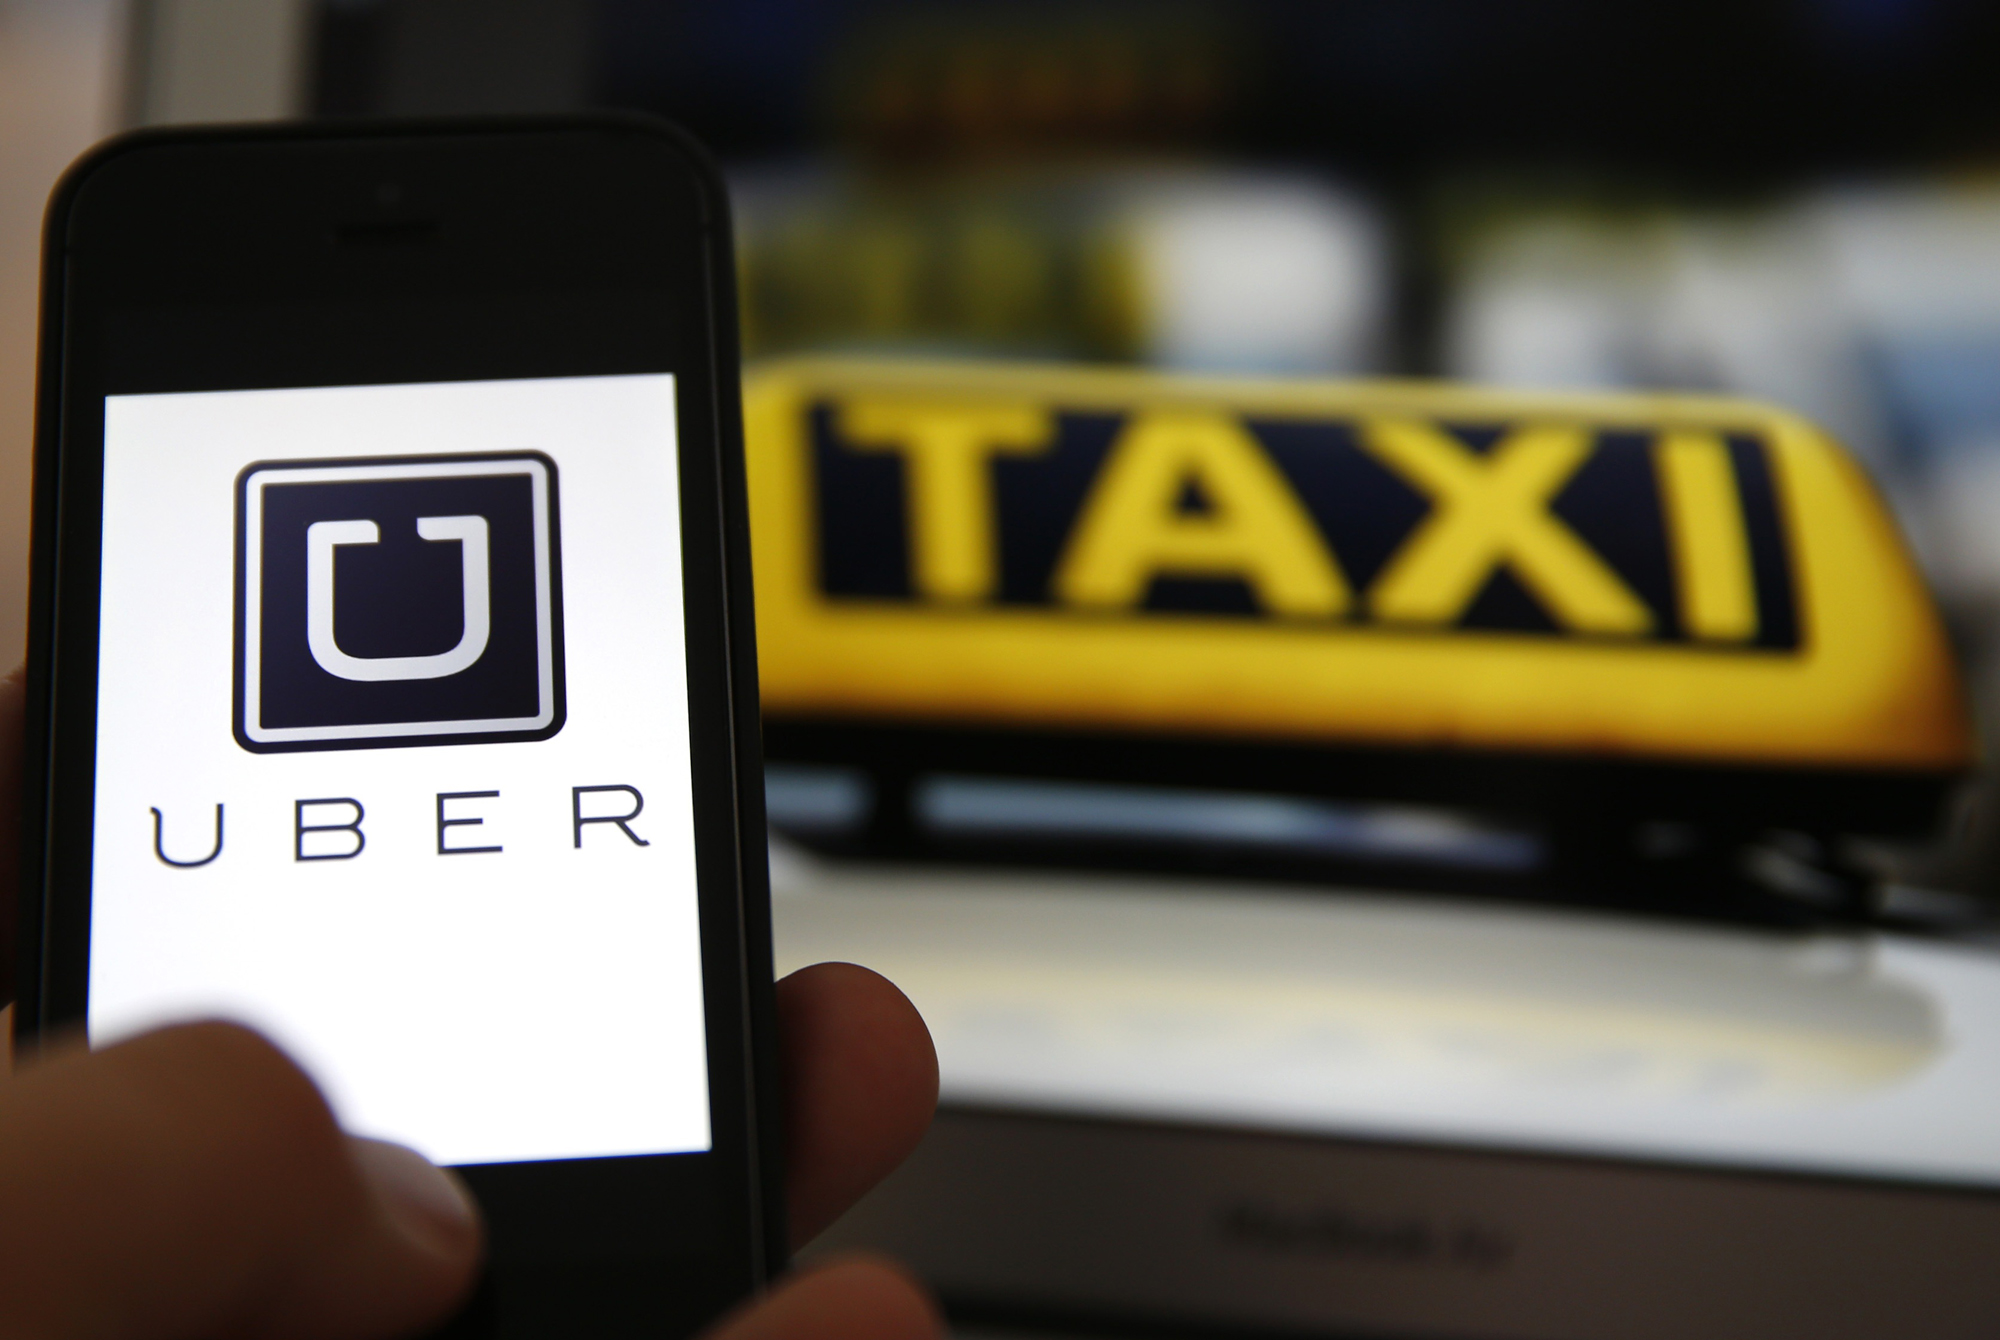 Uber Returns to Barcelona